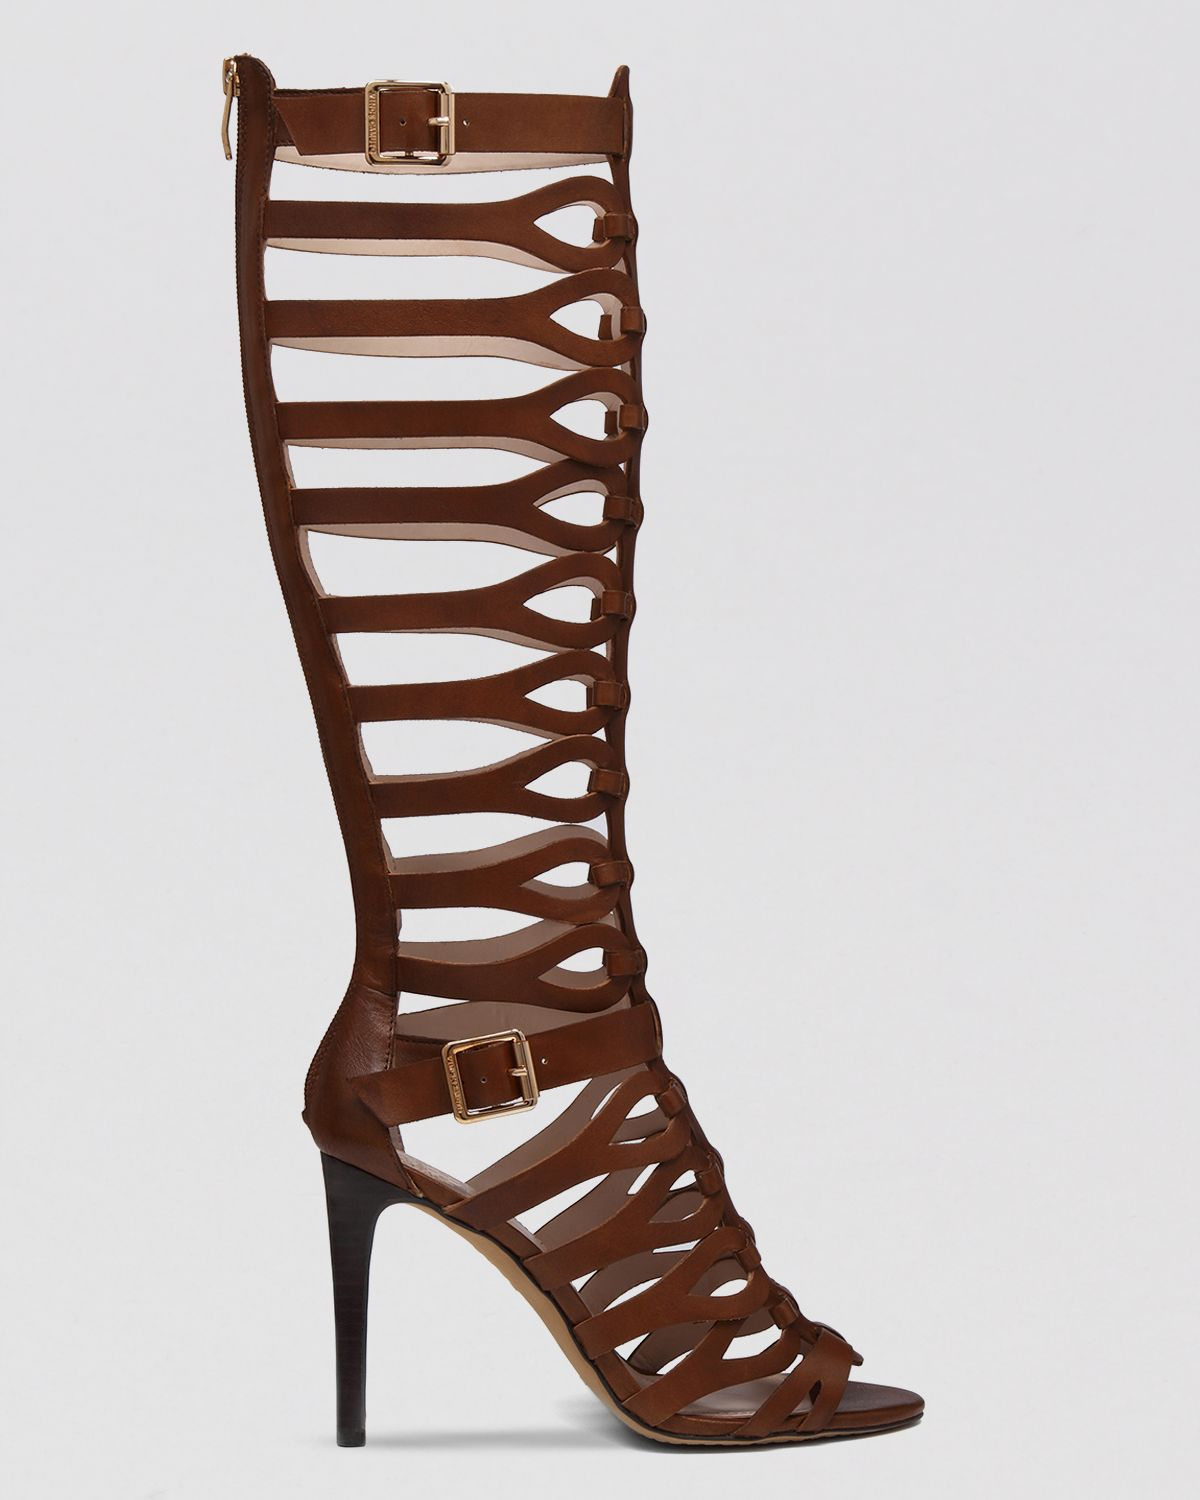 Vince camuto Gladiator Sandals Omera High Heel in Brown | Lyst